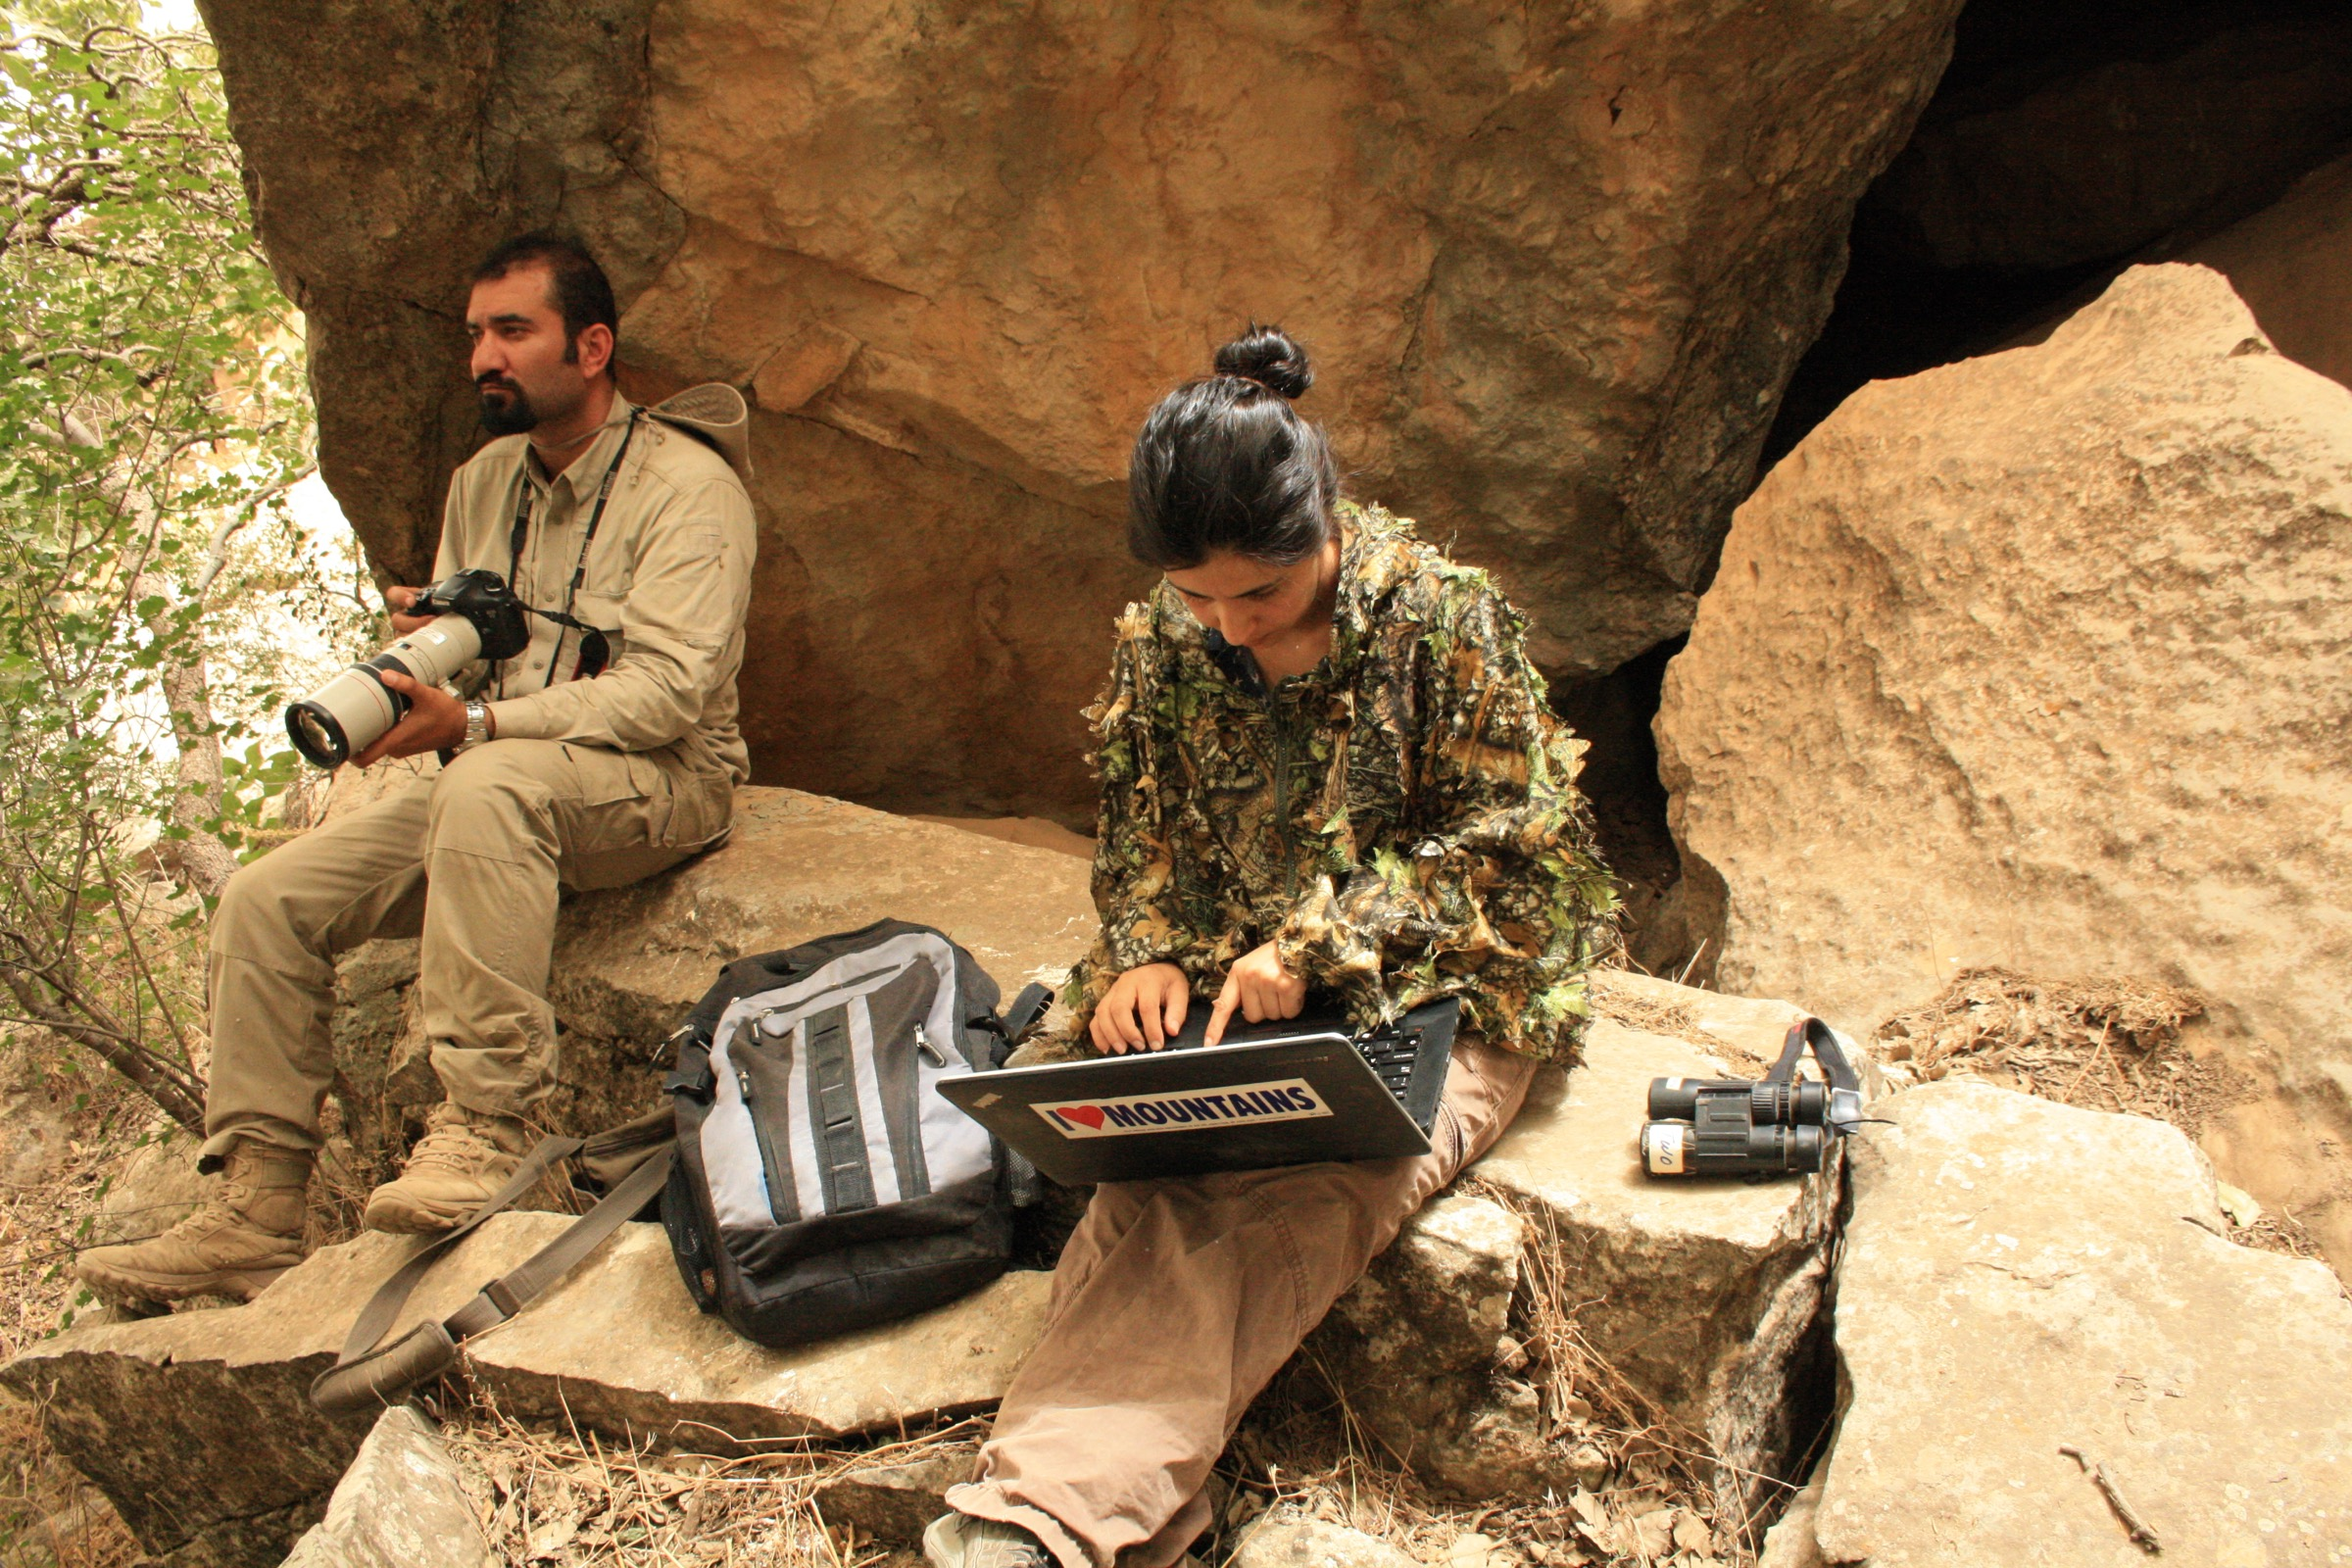 Hana Raza and Korsh Ararat take a break from surveying for endangered Persian leopards in Iraq. Photograph by Dishad Muhamad